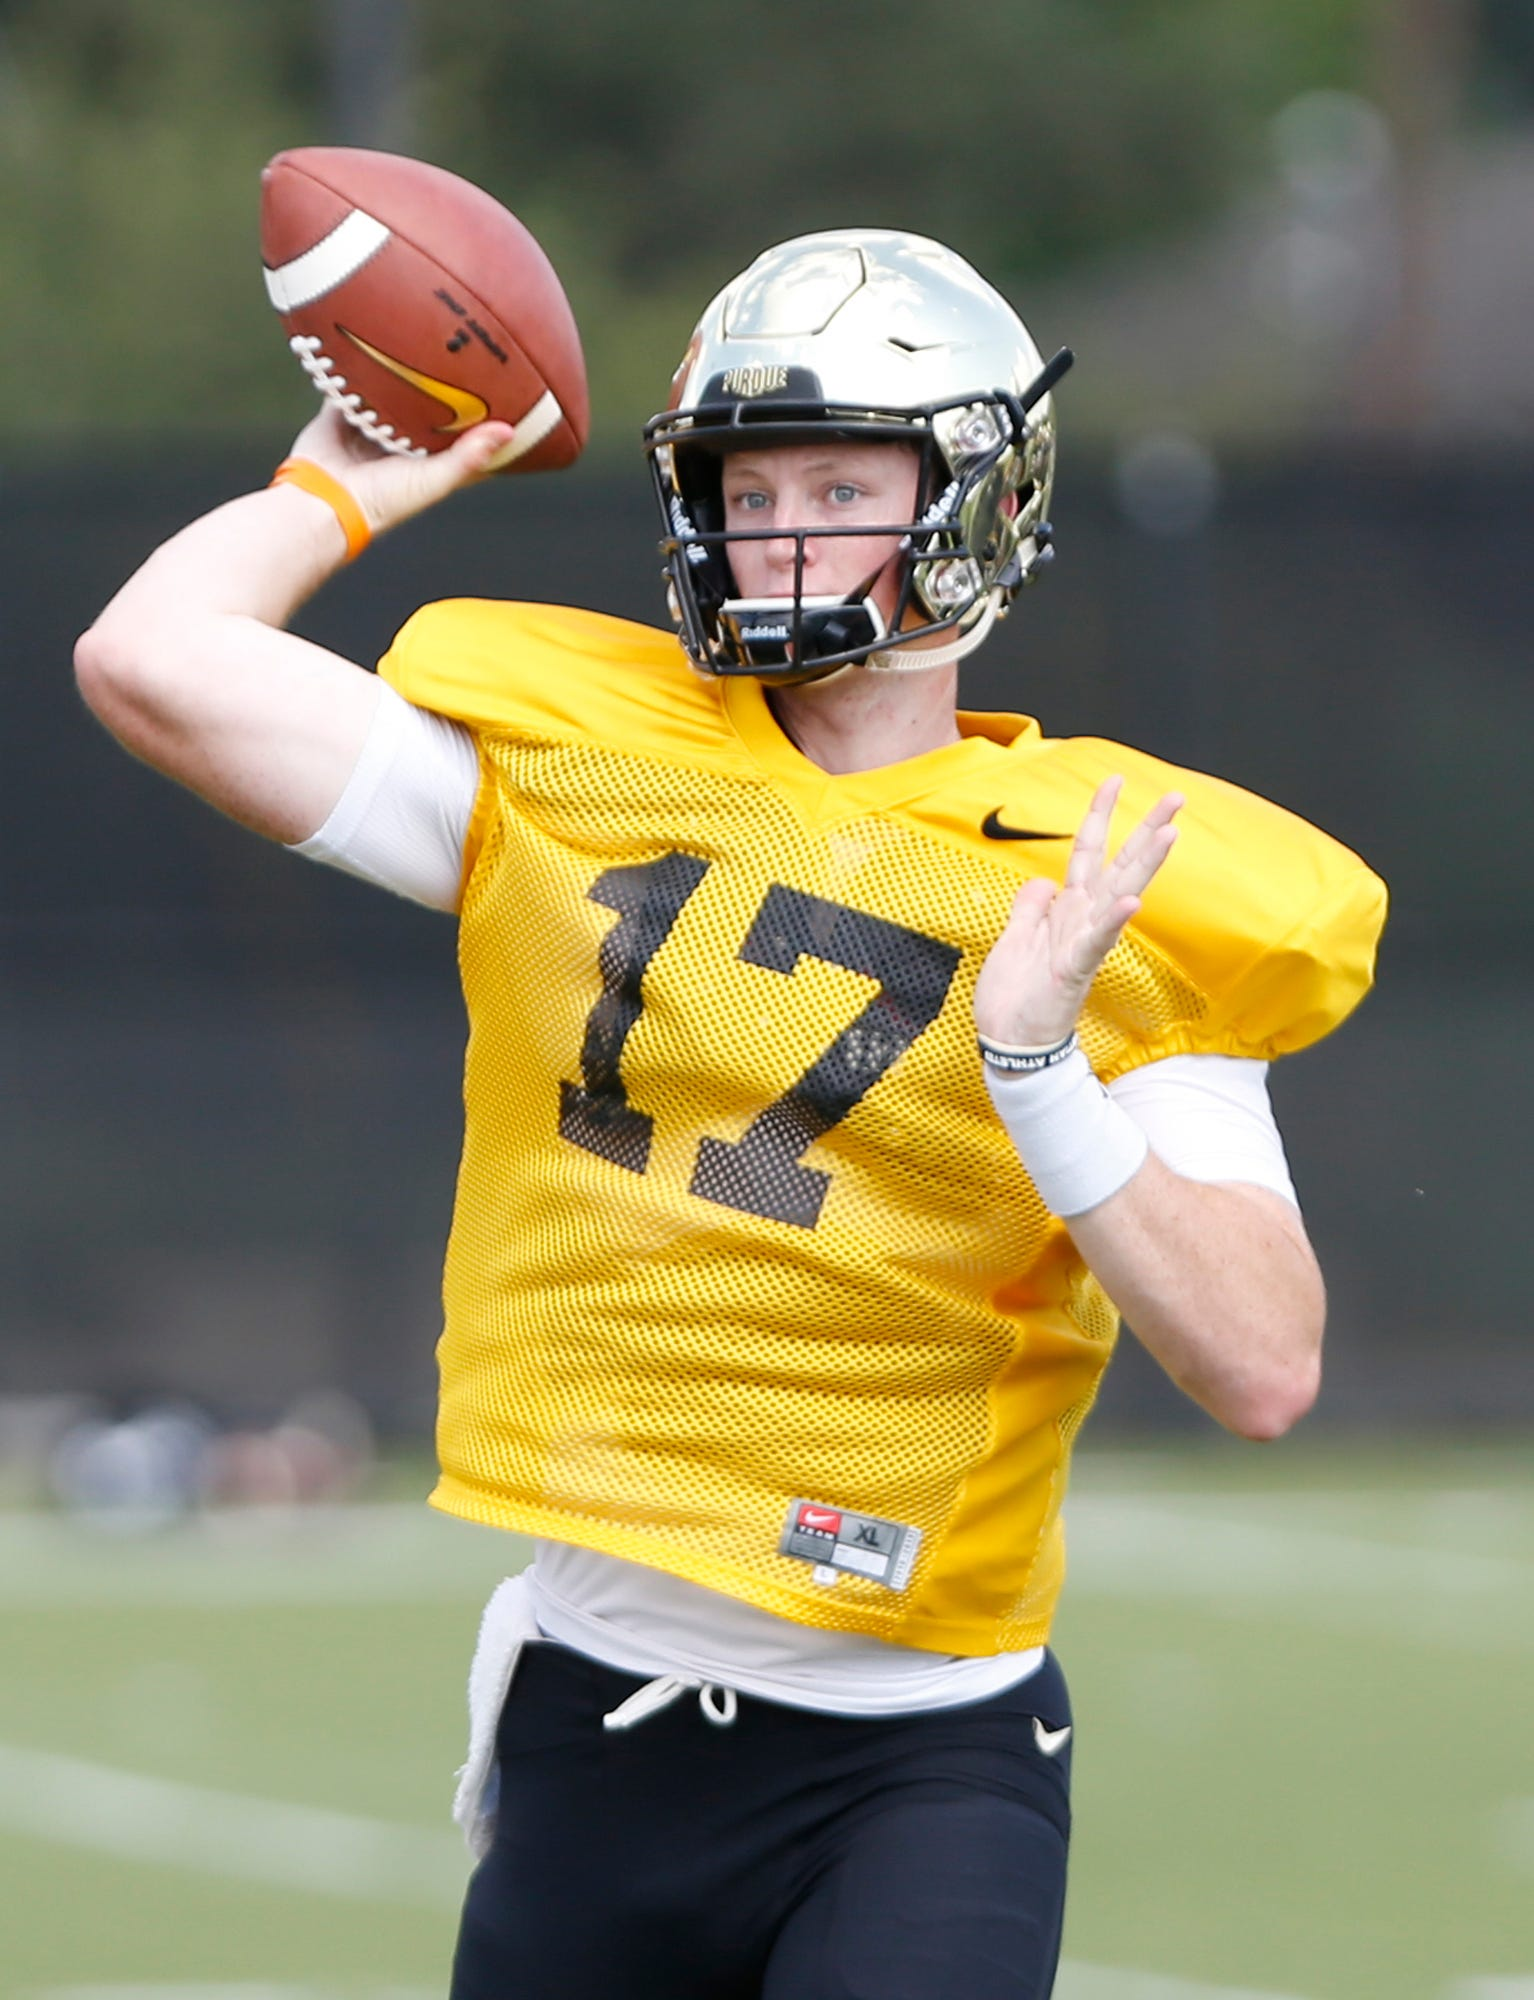 Quarterback Nick Sipe with a pass during Purdue football practice Monday, August 27, 2018, in West Lafayette.